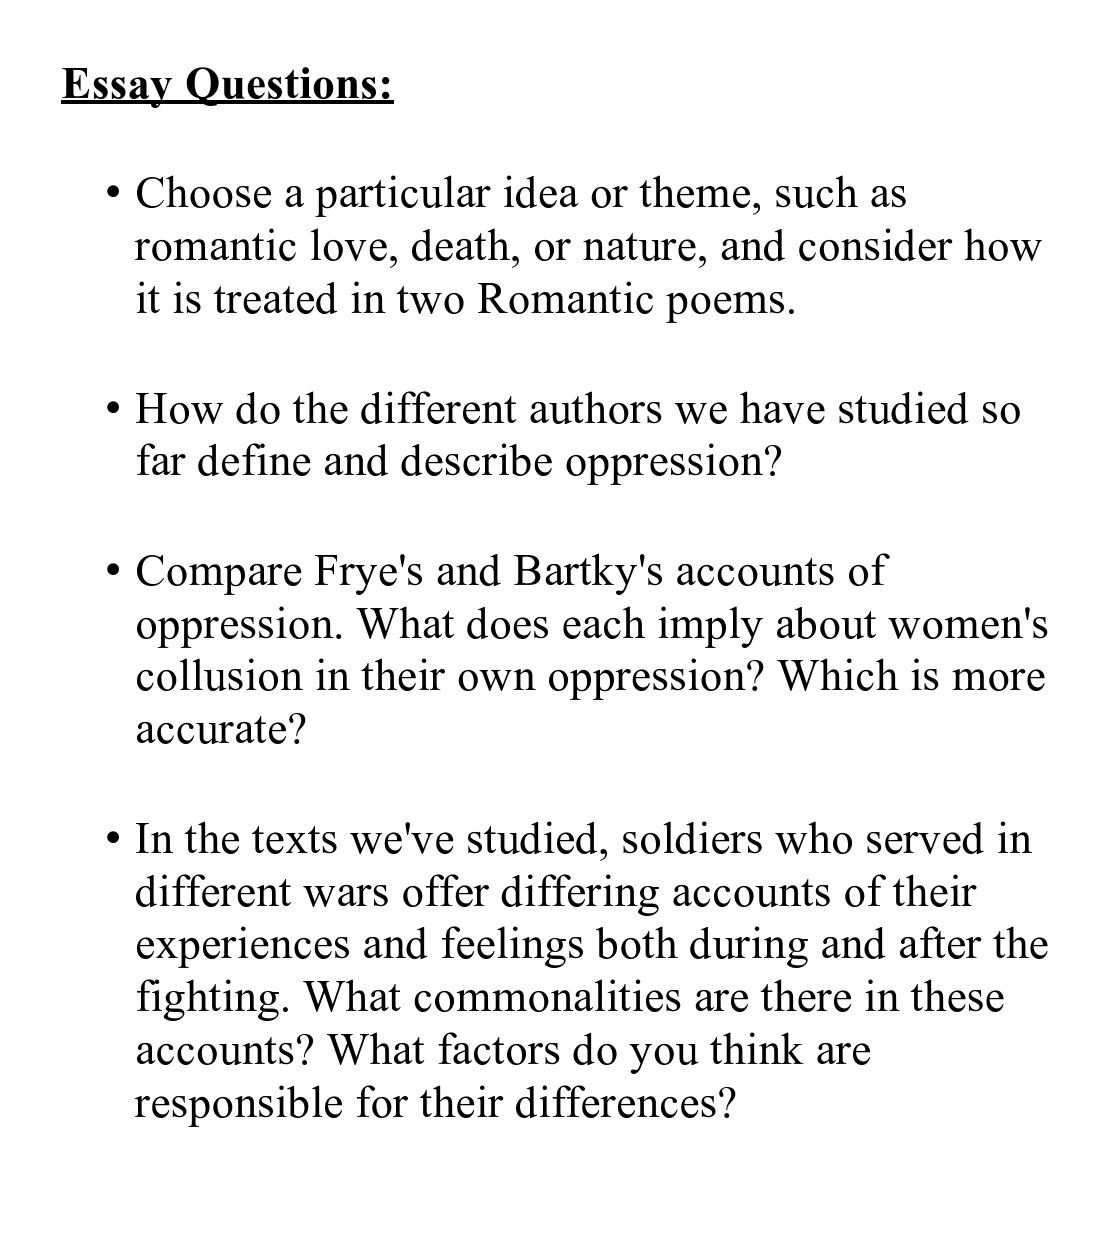 007 Essay Example Prompts Questions Best Narrative College Topics For Lord Of The Flies Creative Writing Full